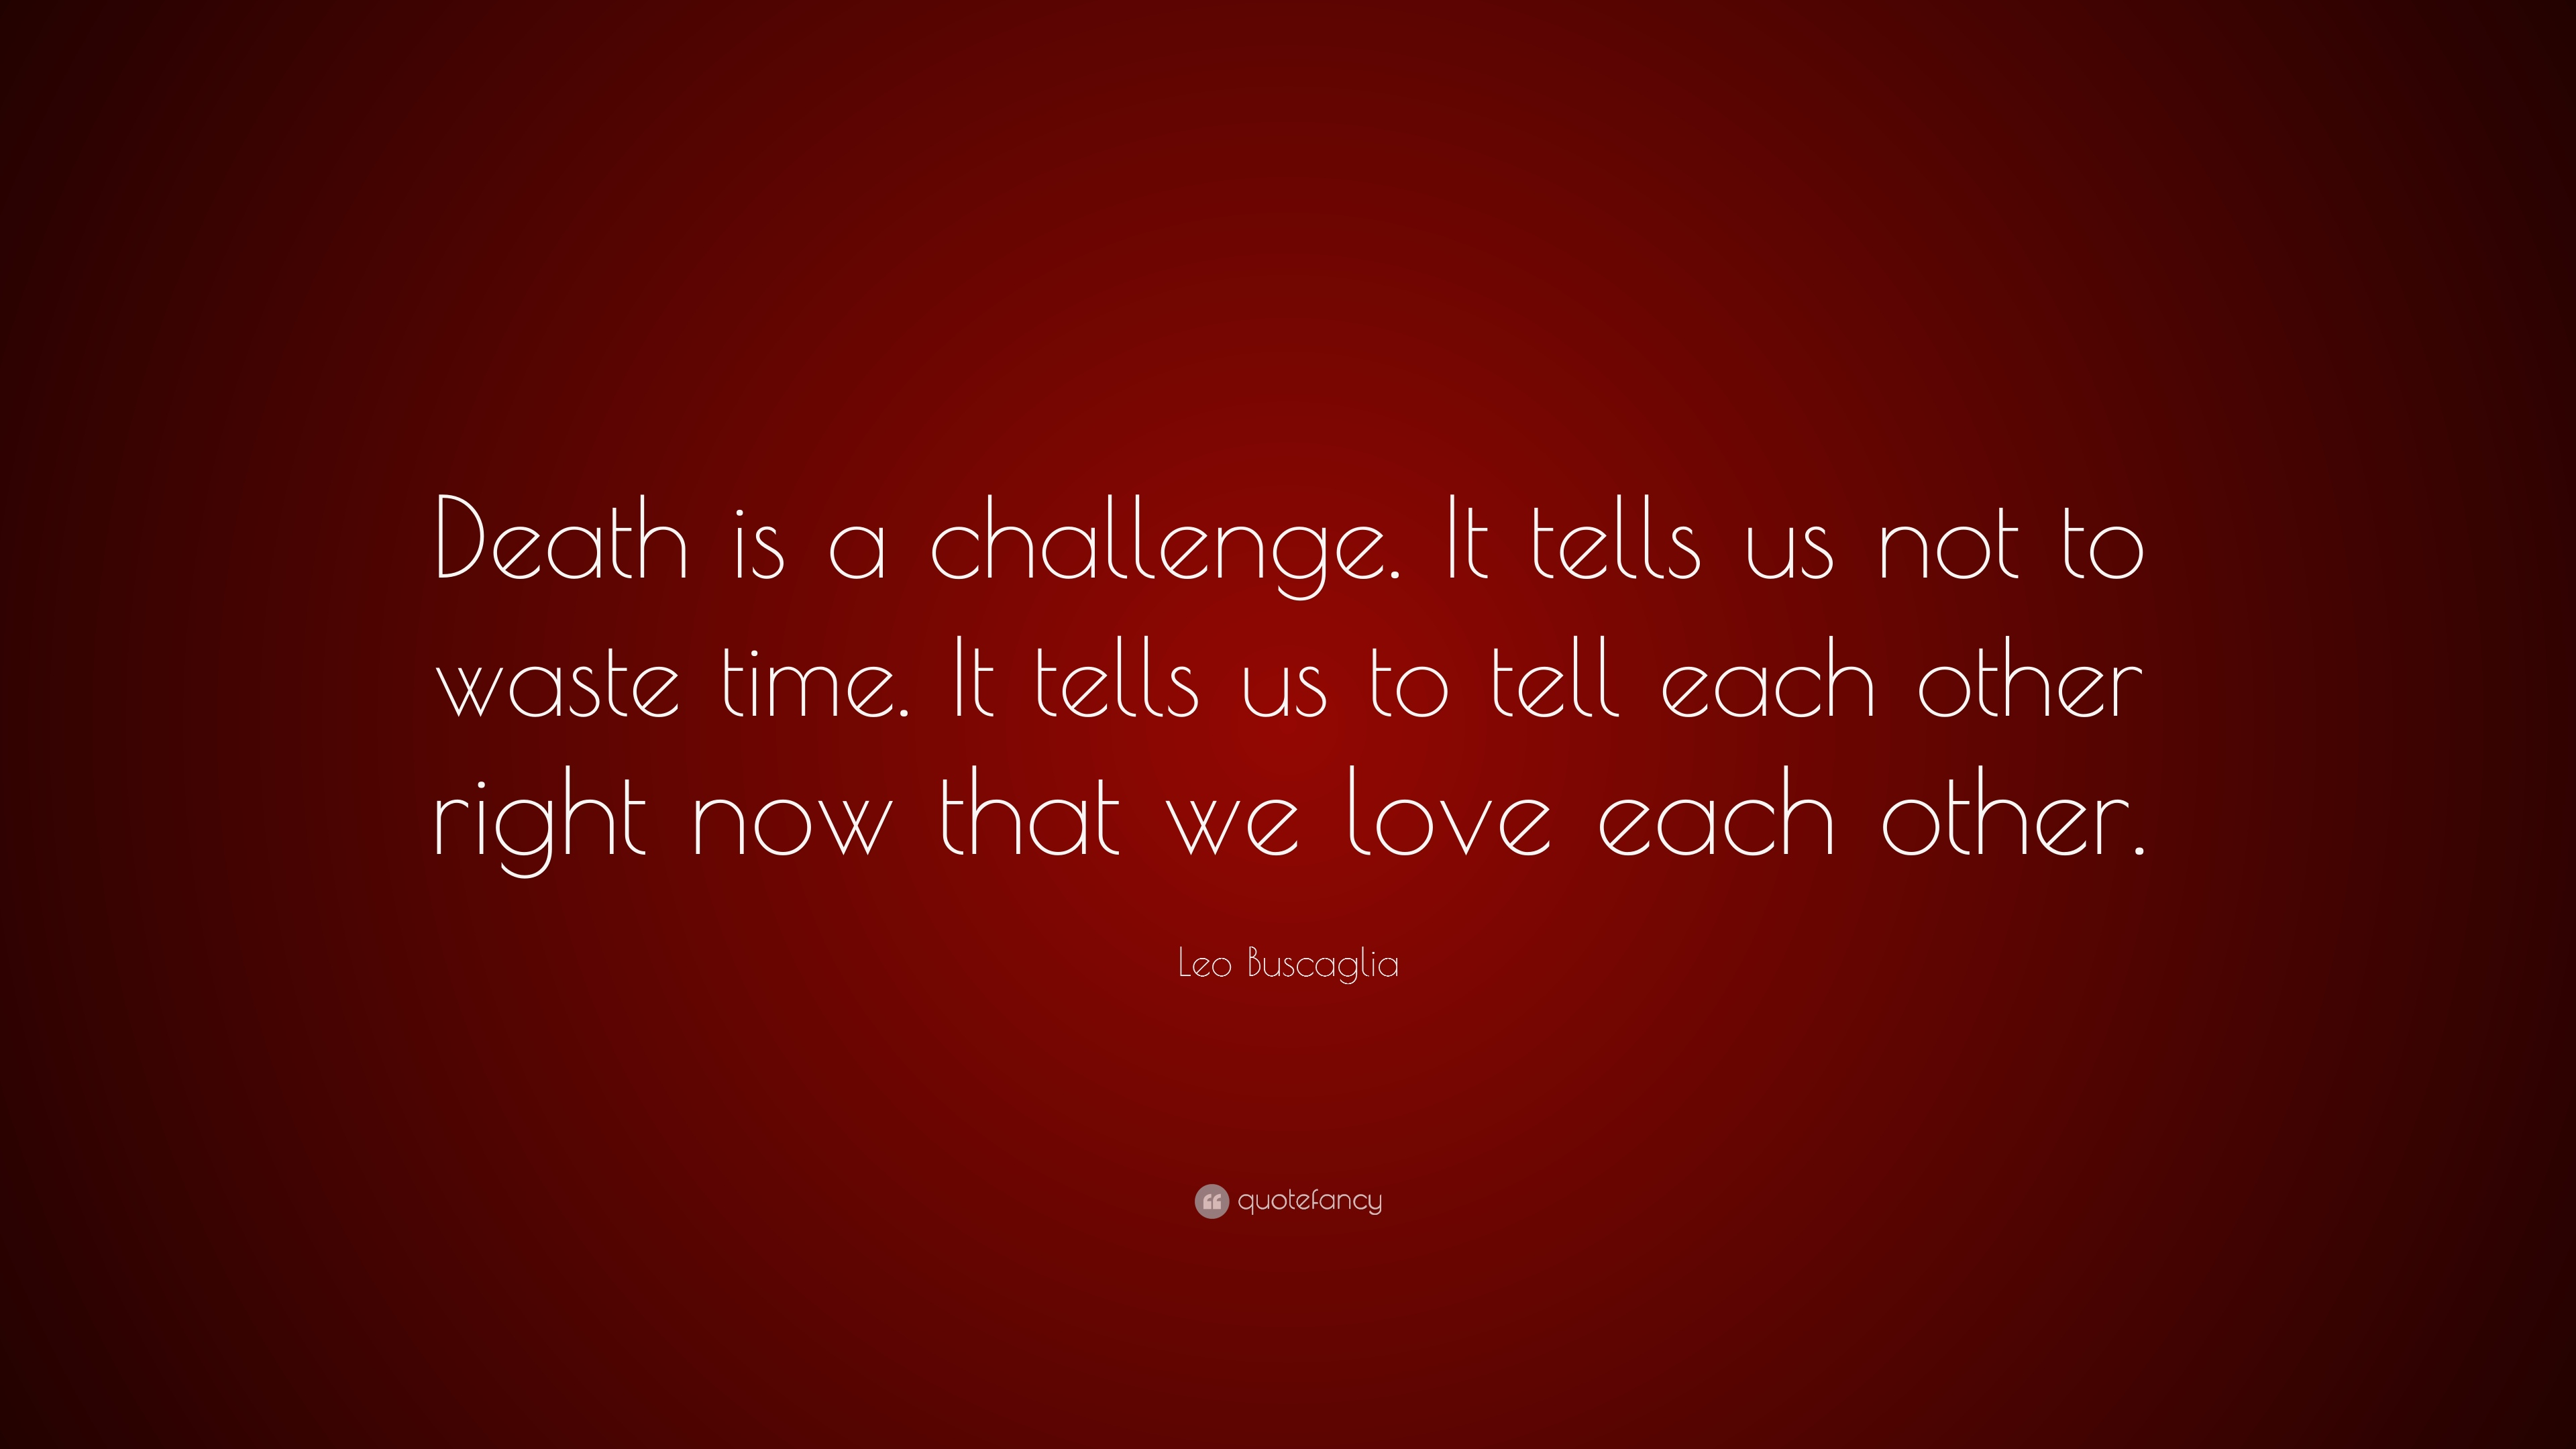 Leo Buscaglia Quote: '� Death Is A Challenge It Tells Us Not To Waste